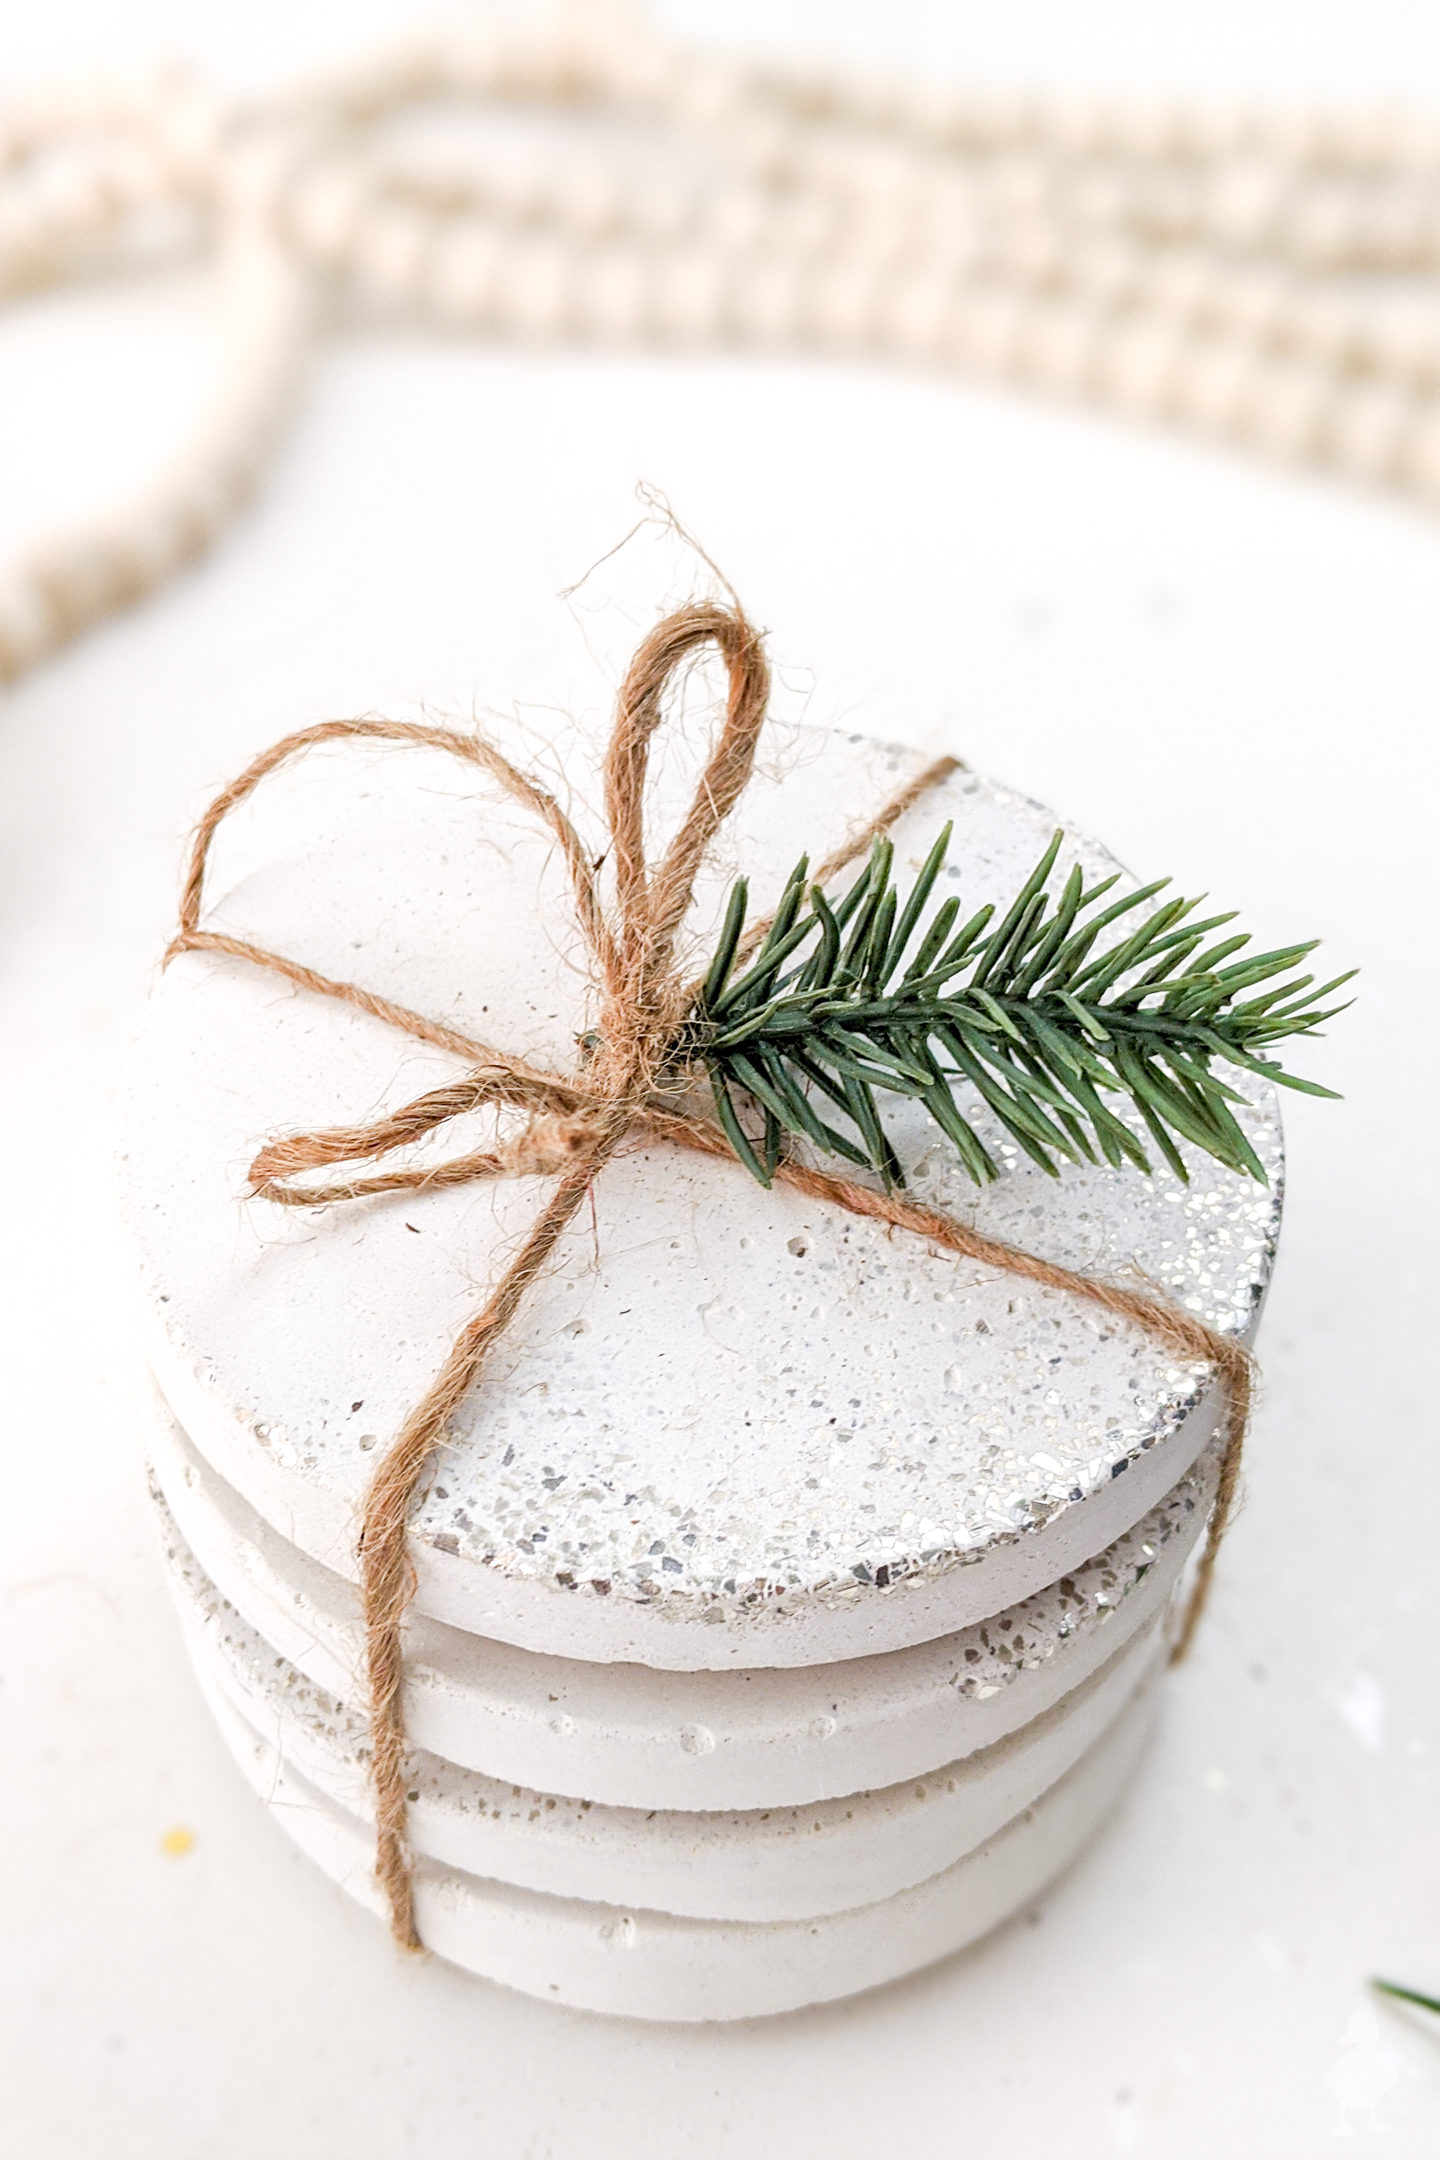 wrap coasters with twine to give as a gift #whiteconcrete #diycoasters #glitter #confetti #newyears #partydecoration #hostessgift #neighborgift